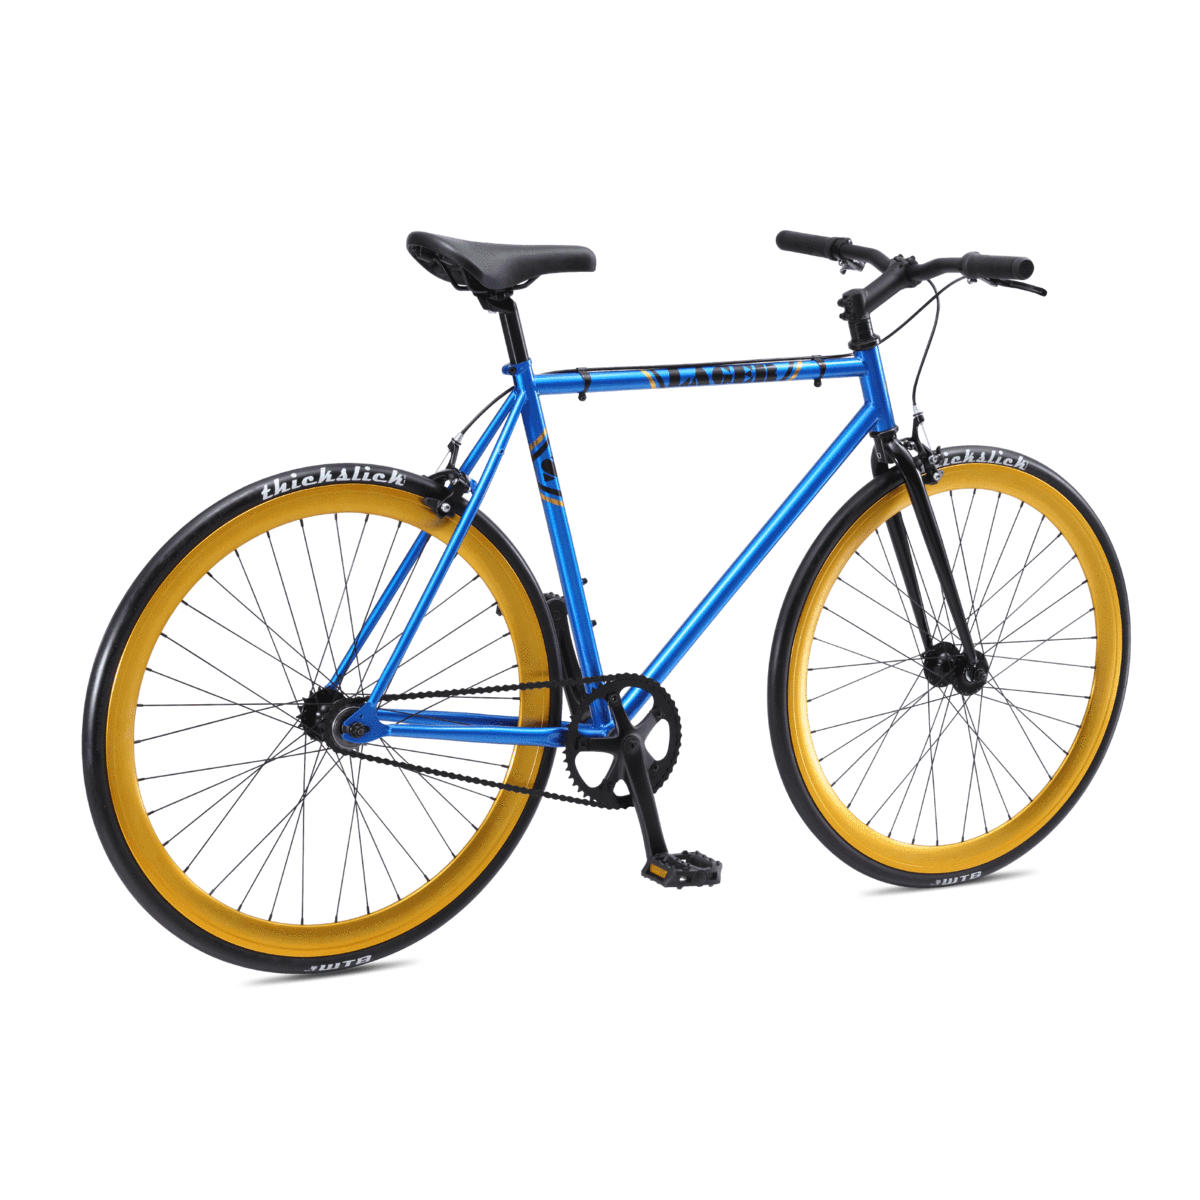 2019_SE_LAGER_USA_ELECTRICBLUE_REAR_1200x